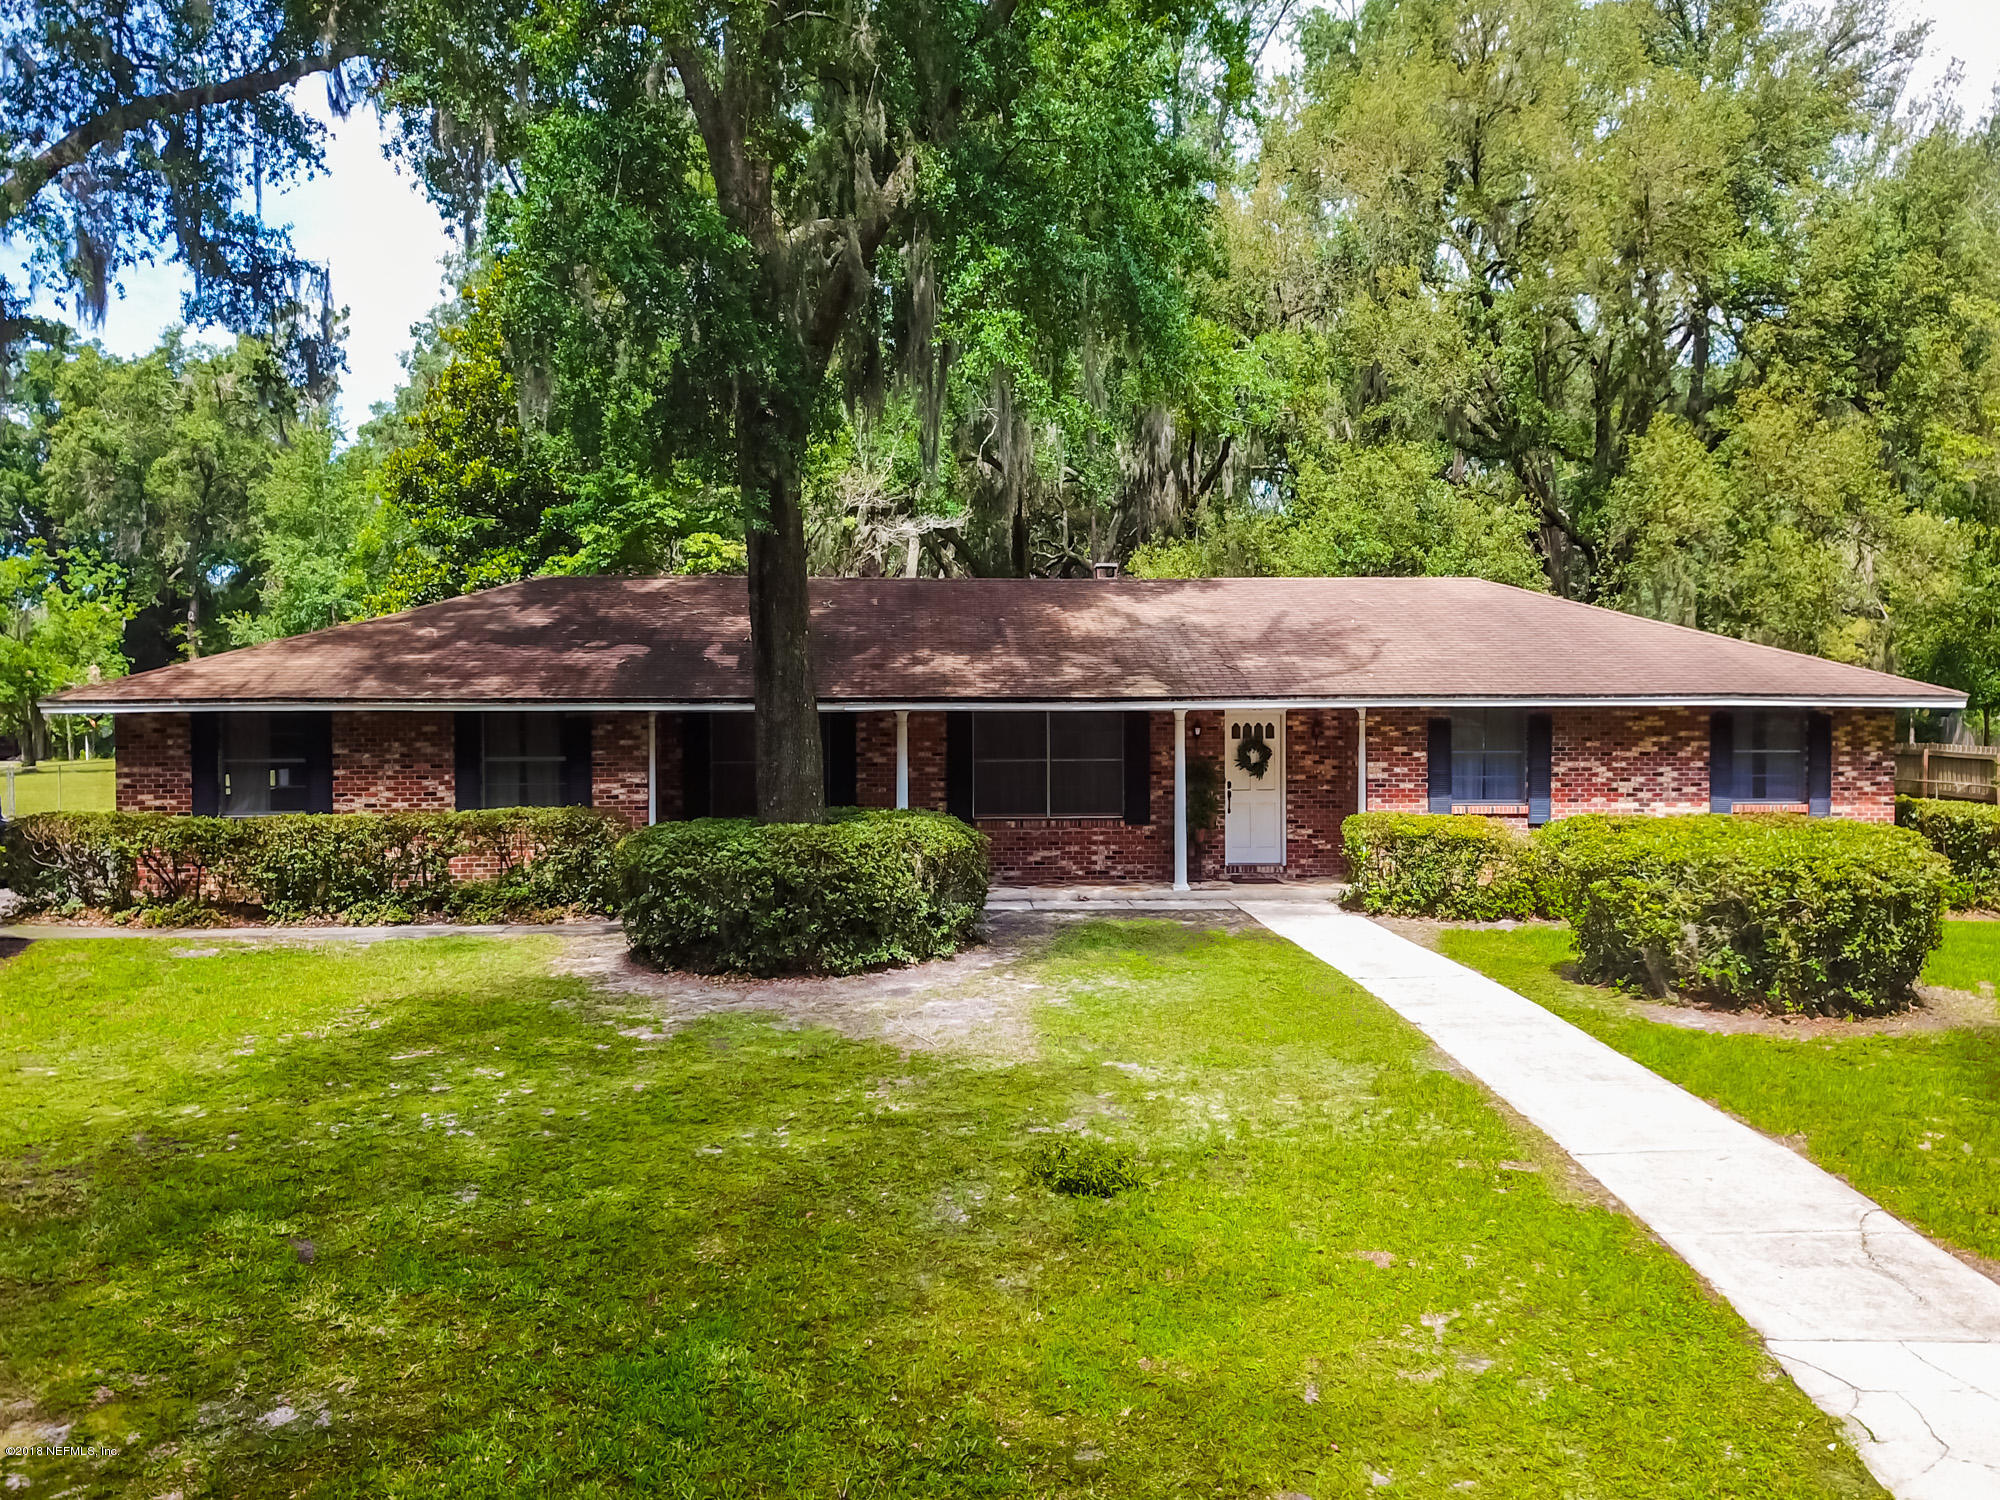 928 GILL, JACKSONVILLE, FLORIDA 32221, 3 Bedrooms Bedrooms, ,2 BathroomsBathrooms,Residential - single family,For sale,GILL,984709